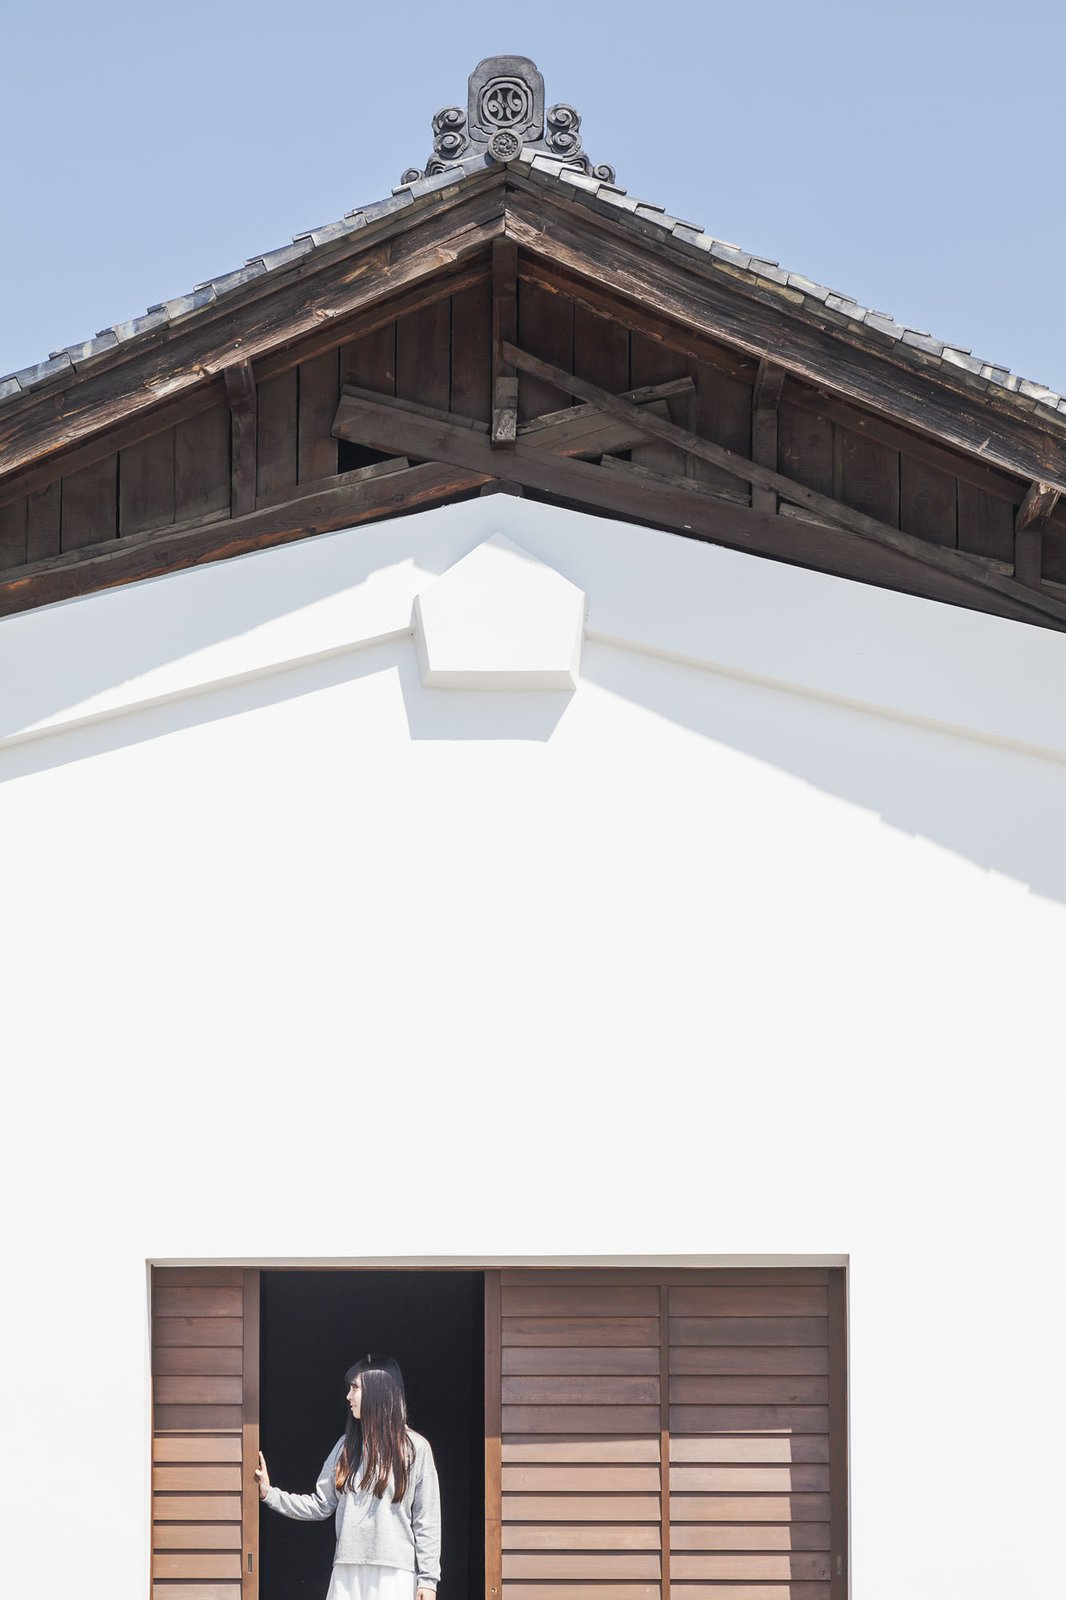 Architect Jorge Almazán, members of his studio lab at Keio University, and local community members worked to preserve as many historic details as possible, including the original roof tiles.  Photo 3 of 8 in Saved From Demolition, a Japanese Sake Warehouse Sees a Second Life